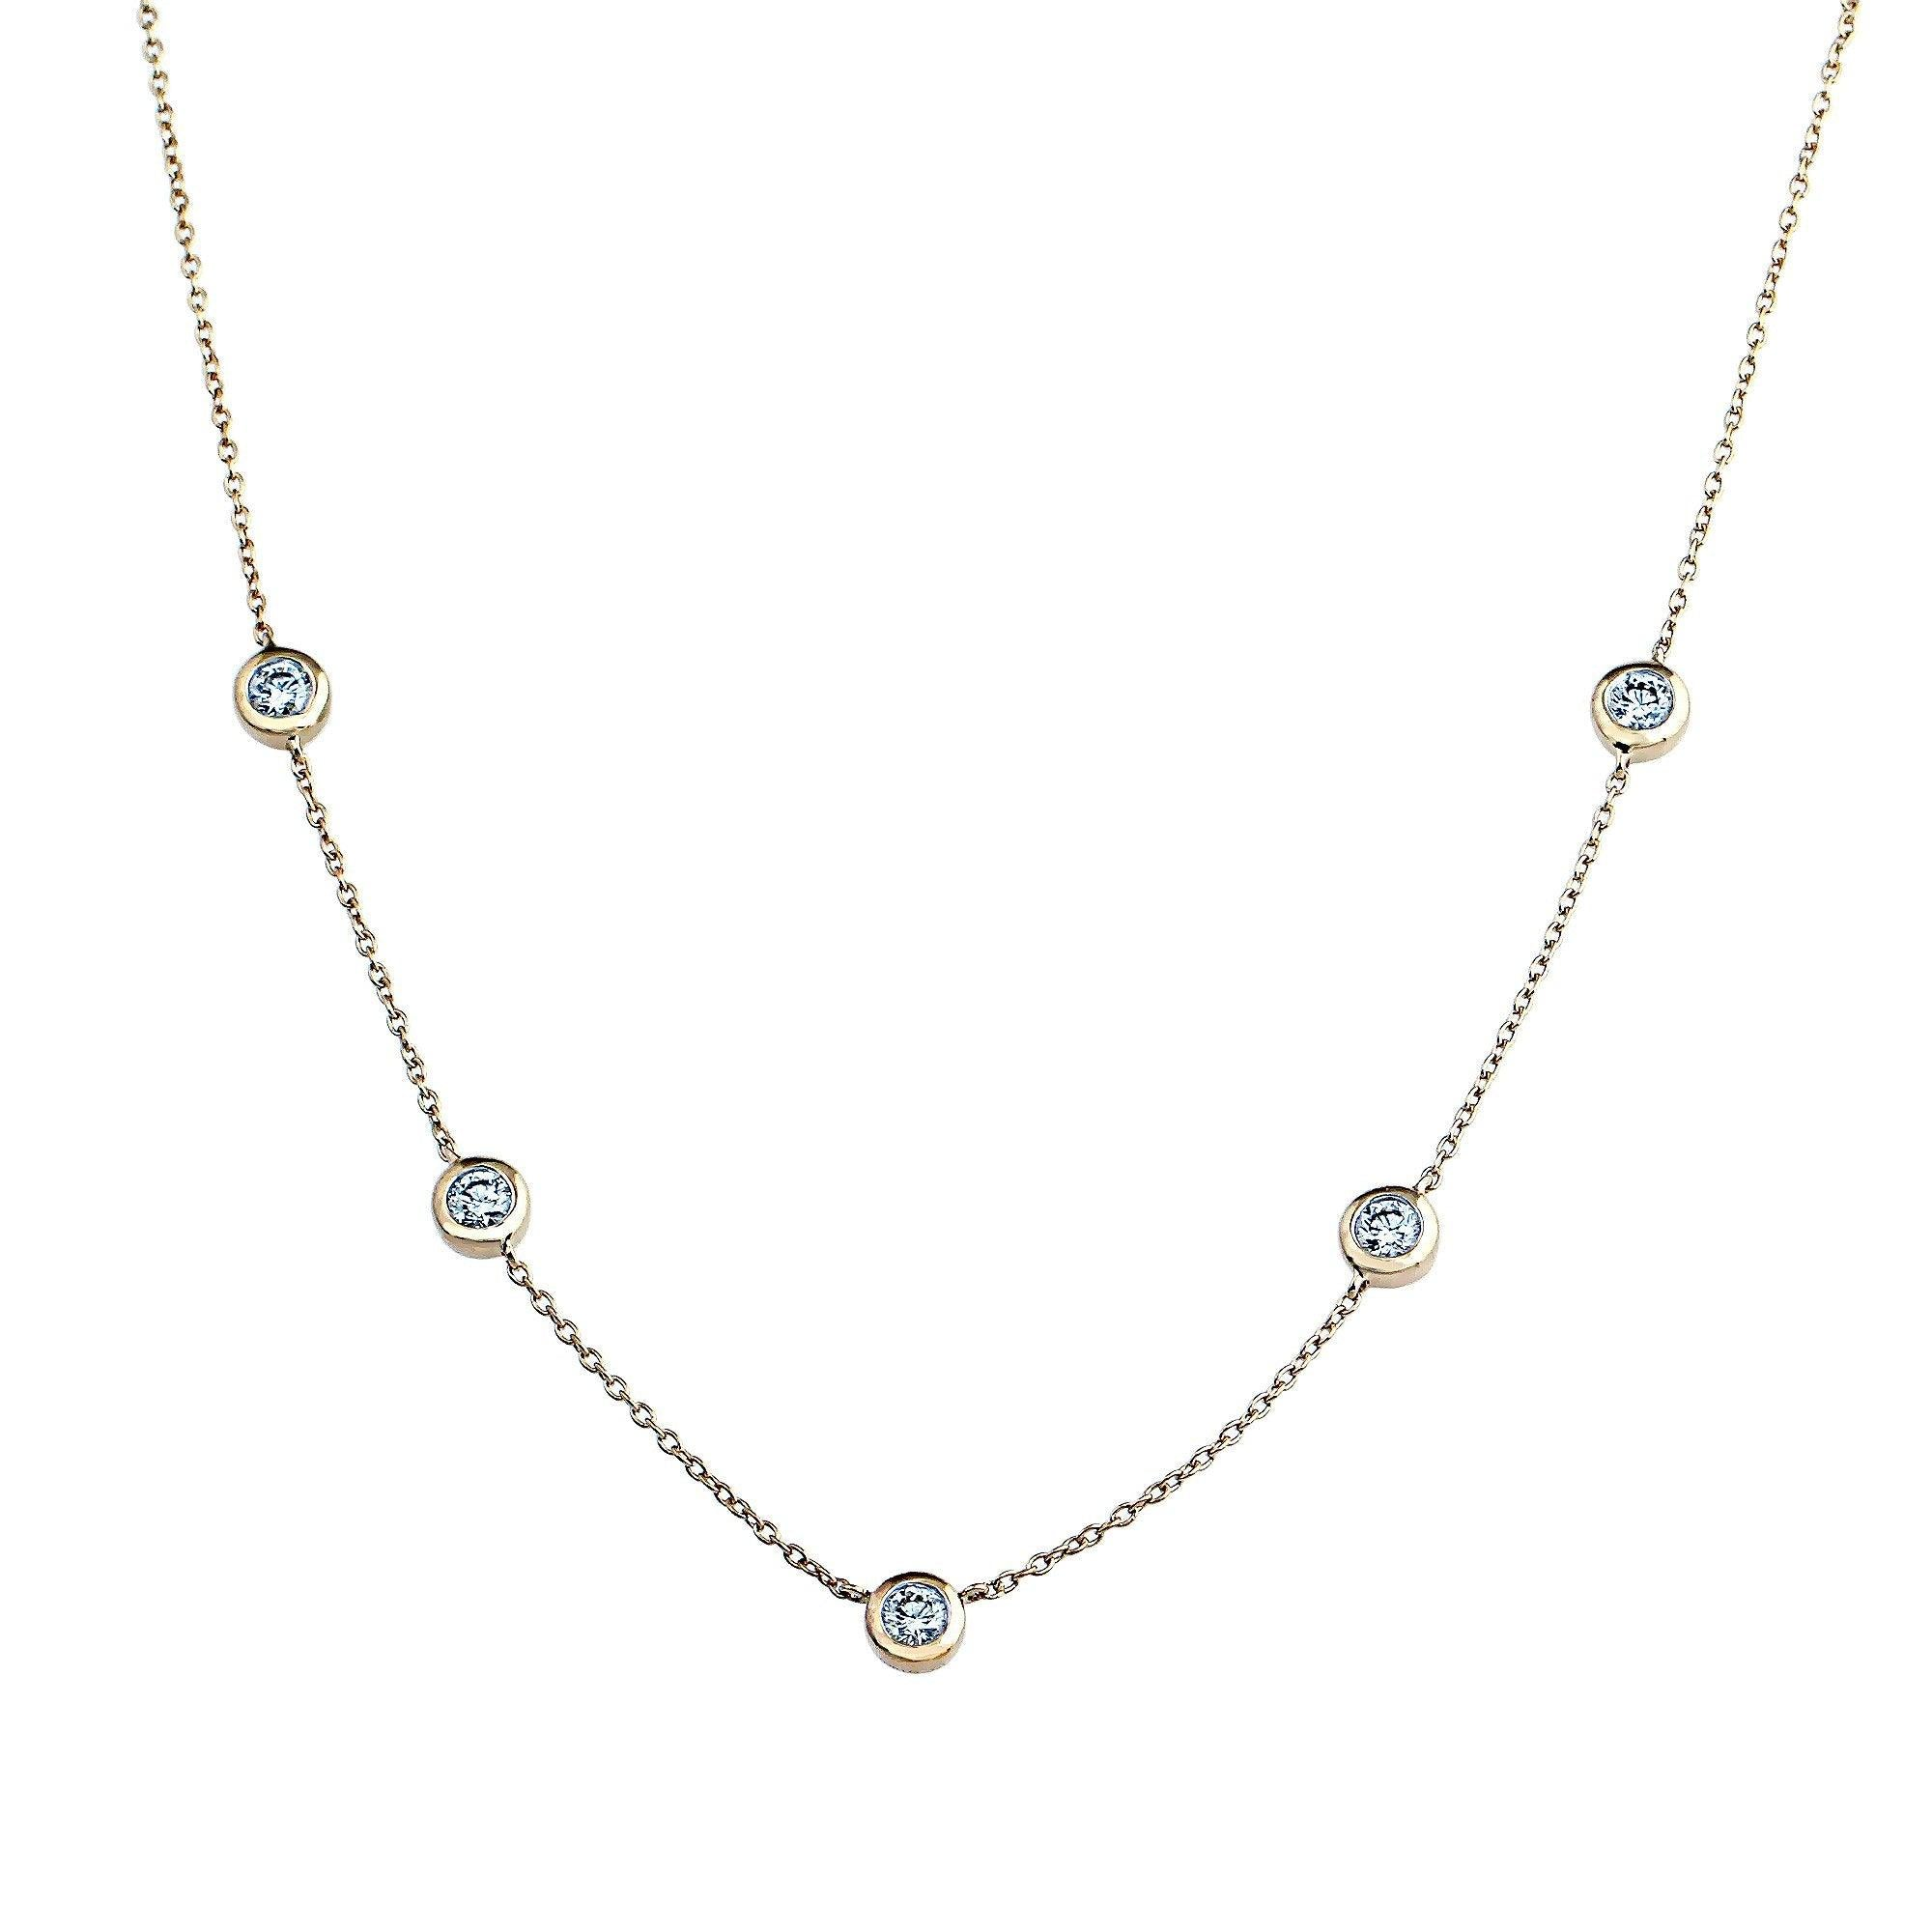 Nuri & Ash Phoenix Diamond Station Necklace - 14k Gold Over Sterling Silver